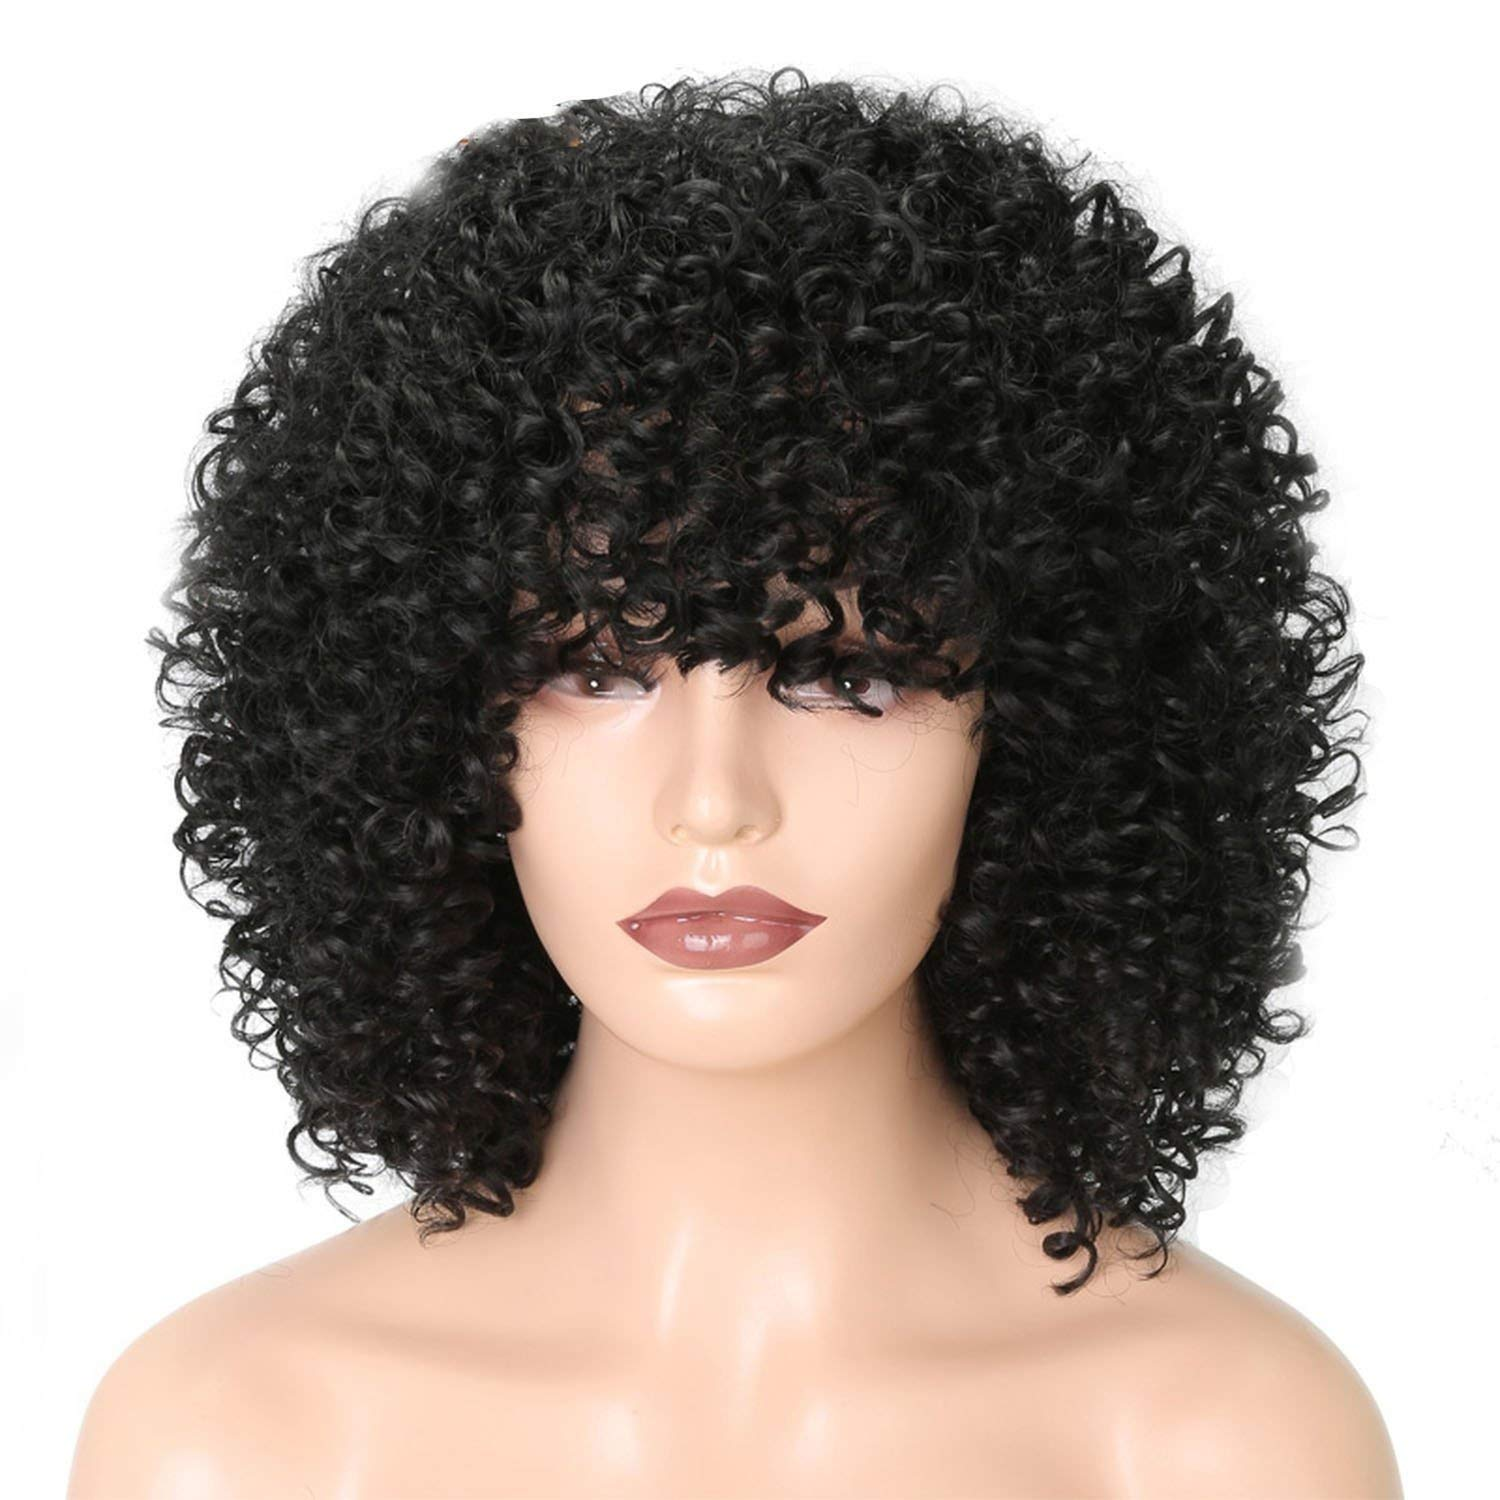 Amazon.com : Short Curly Hair Wigs Women African Hairstyles ...